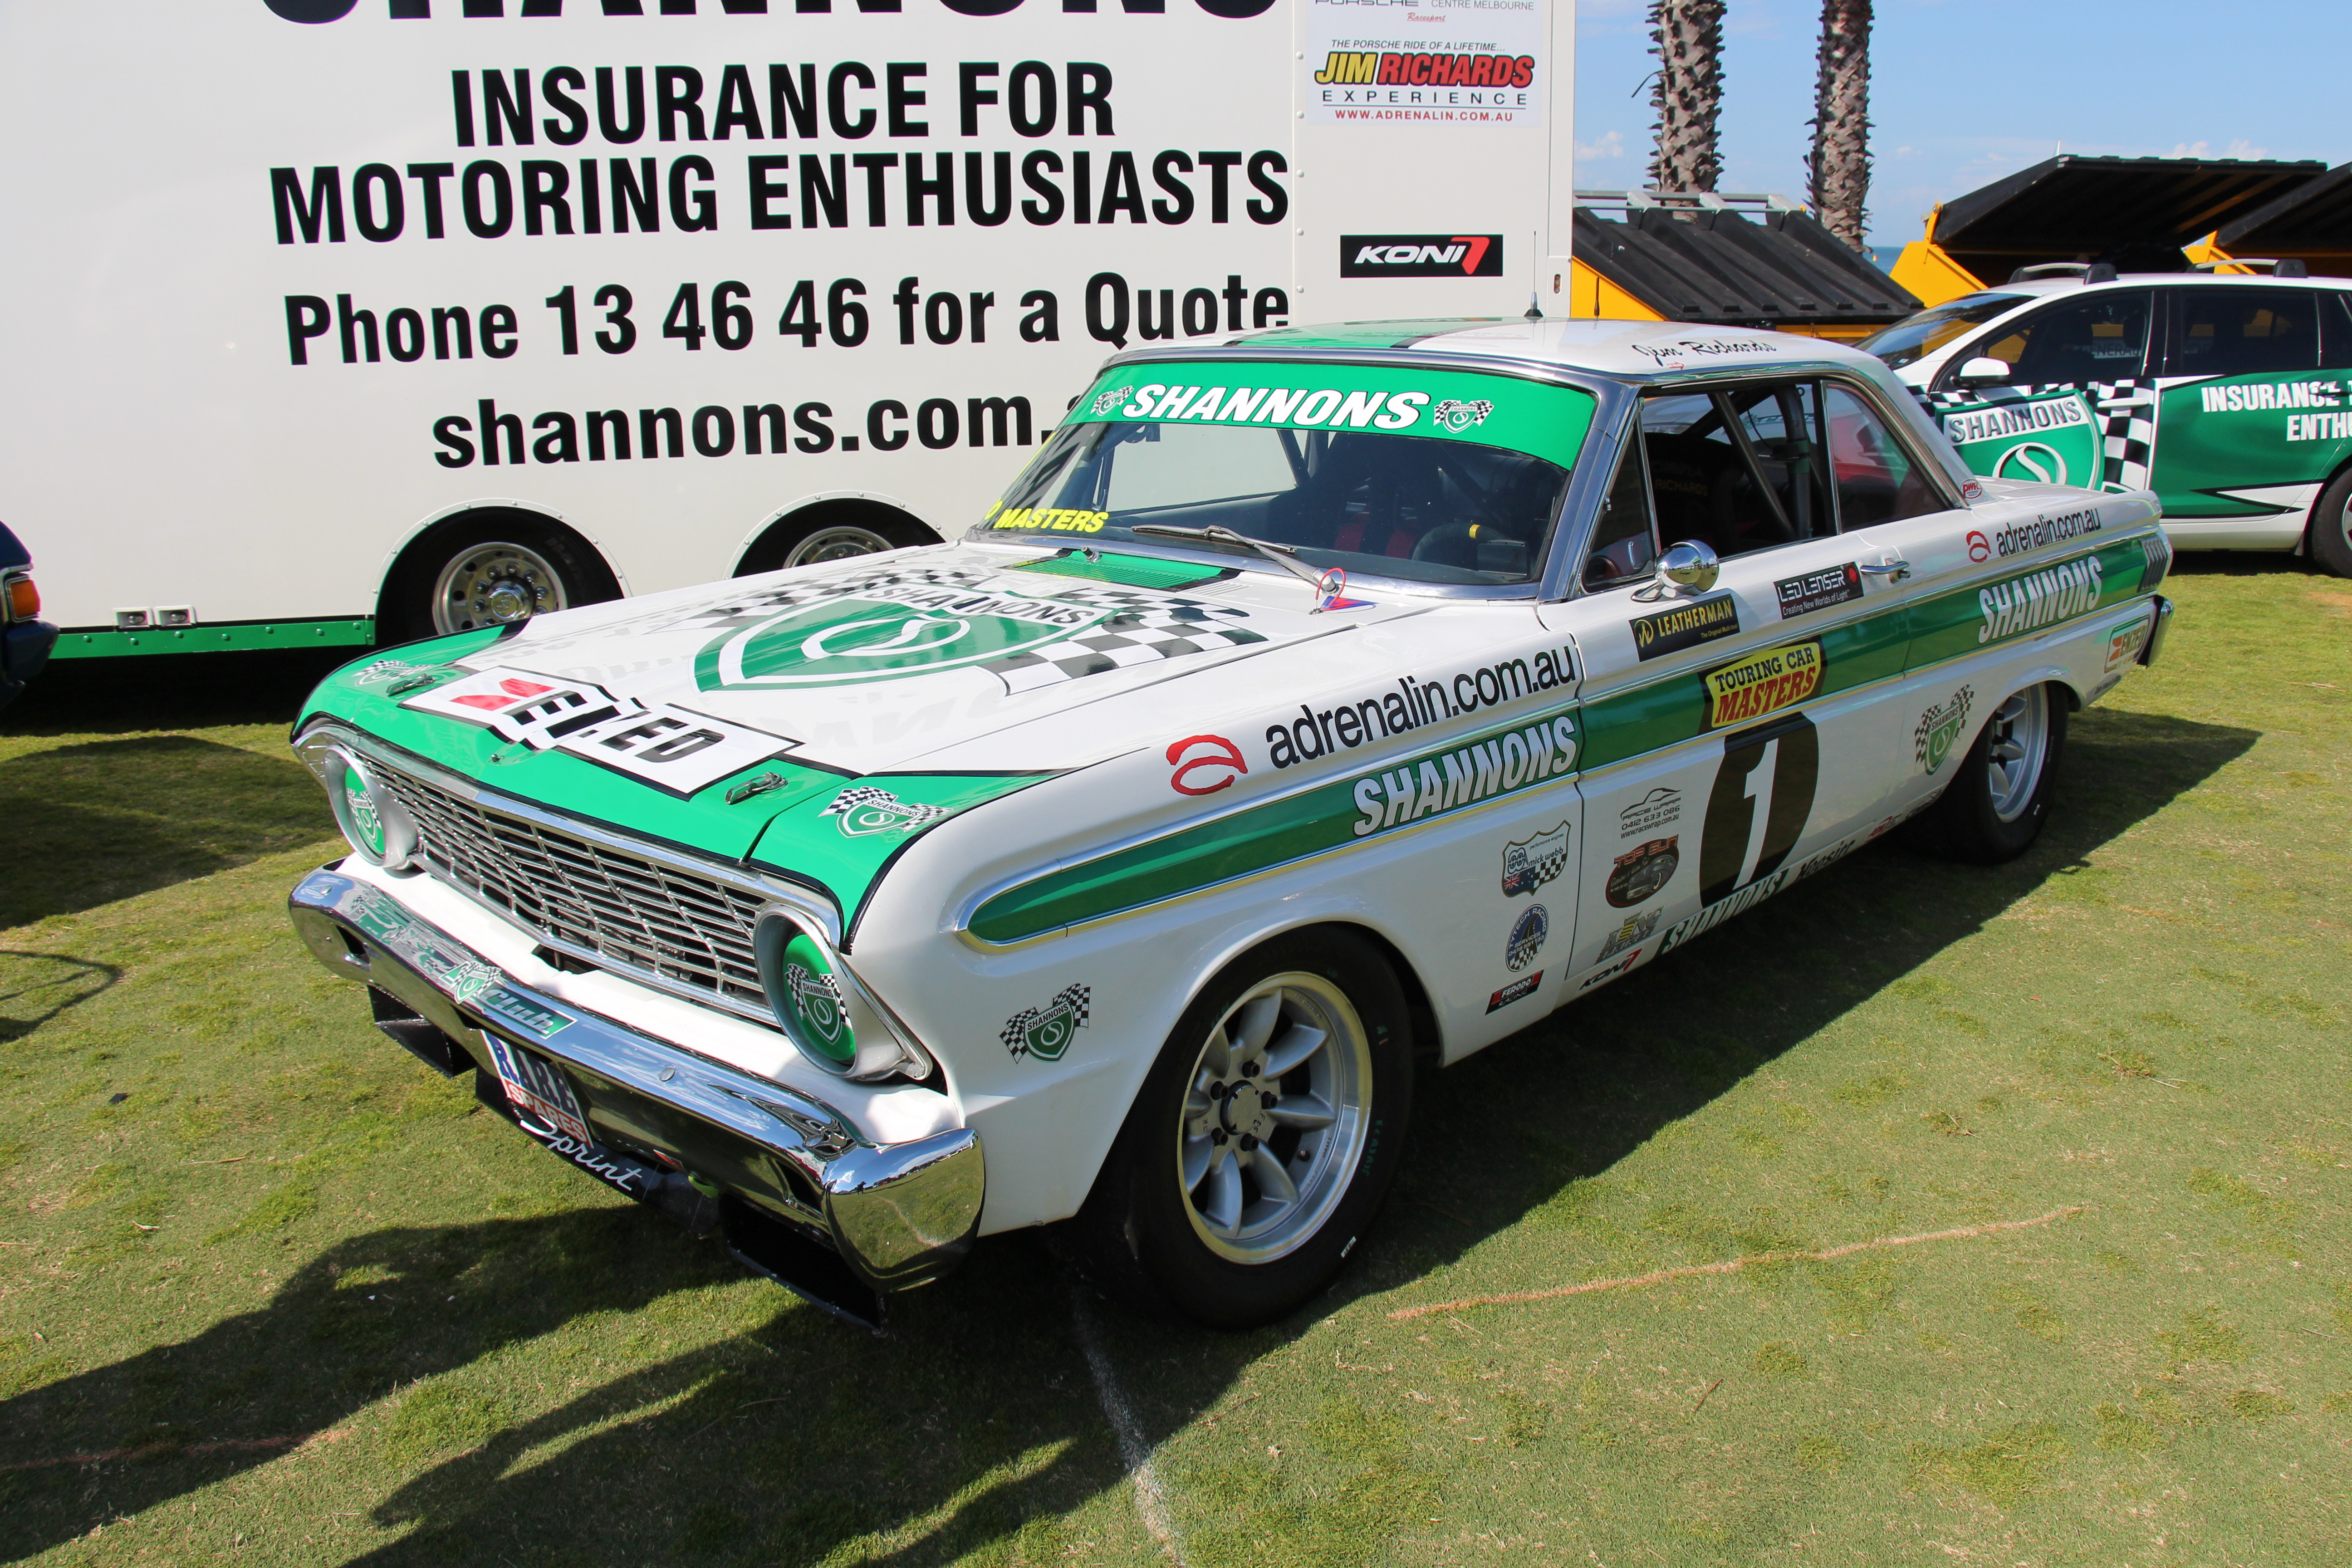 1964 ford falcon 4 door find used 1964 ford falcon 4 door 170 special - File 1964 Ford Falcon Coupe Race Car 15331532364 Jpg